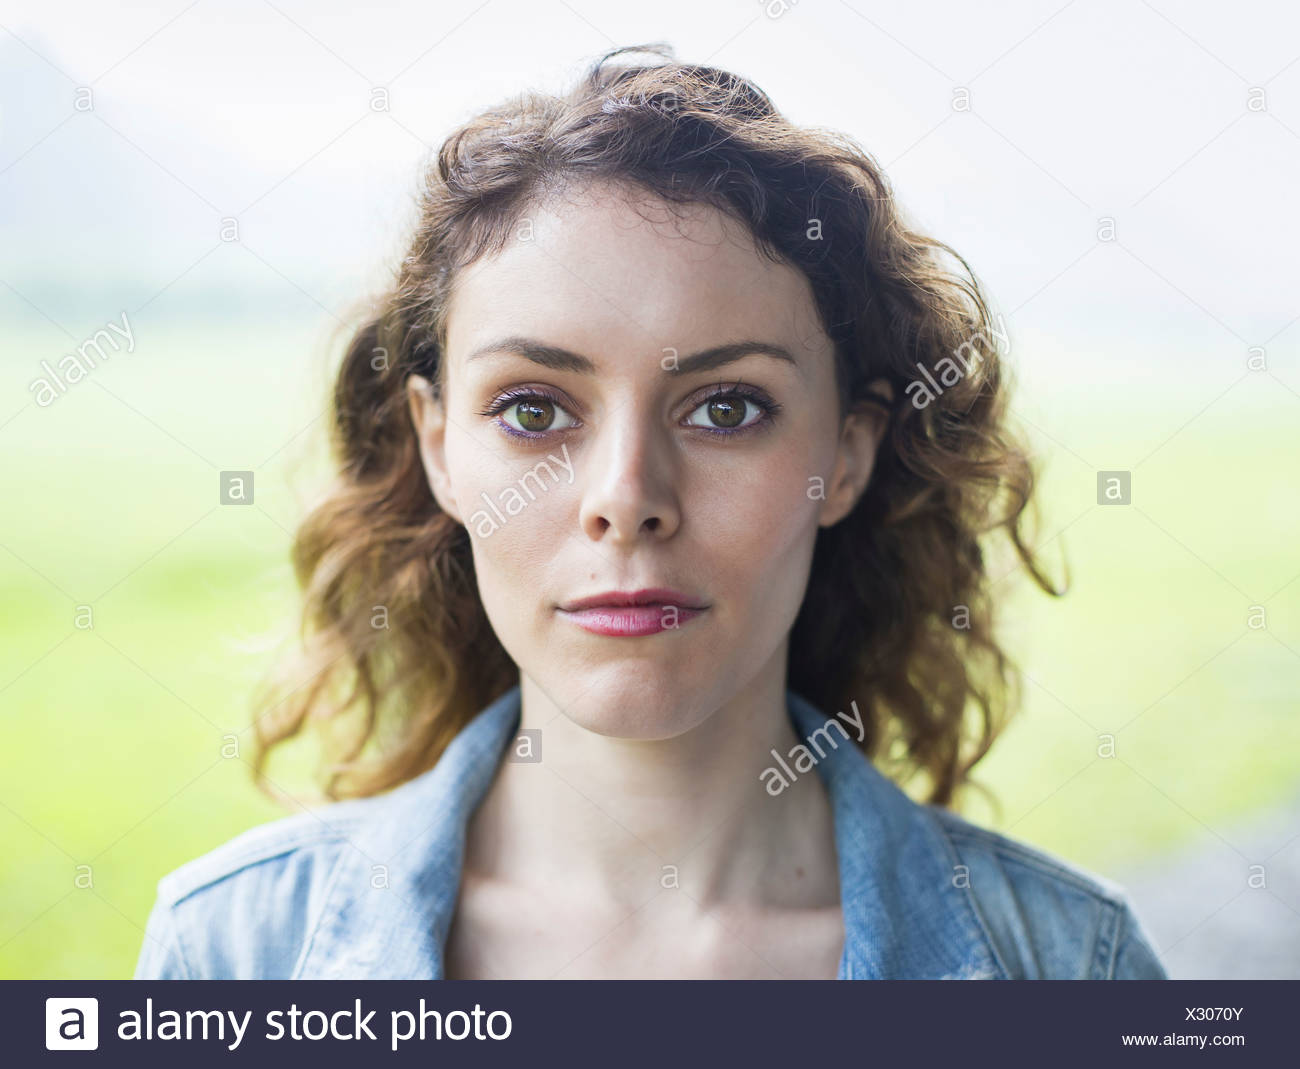 A young woman in a rural landscape with windblown curly hair. - Stock Image